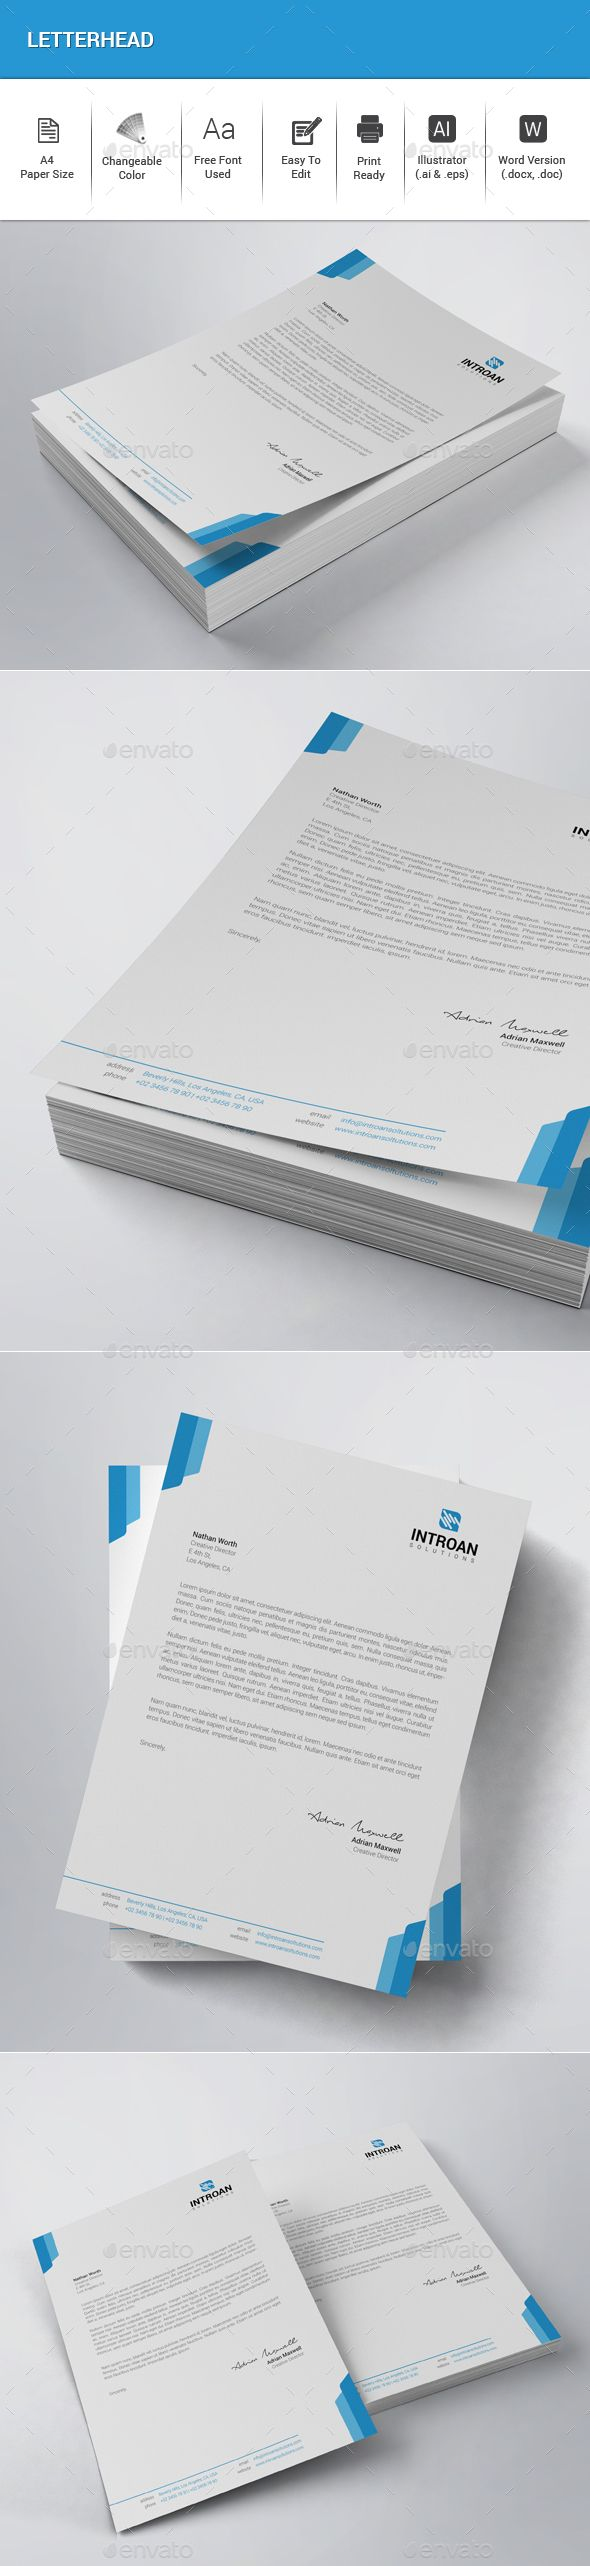 Letterhead Template Vector EPS, AI Illustrator